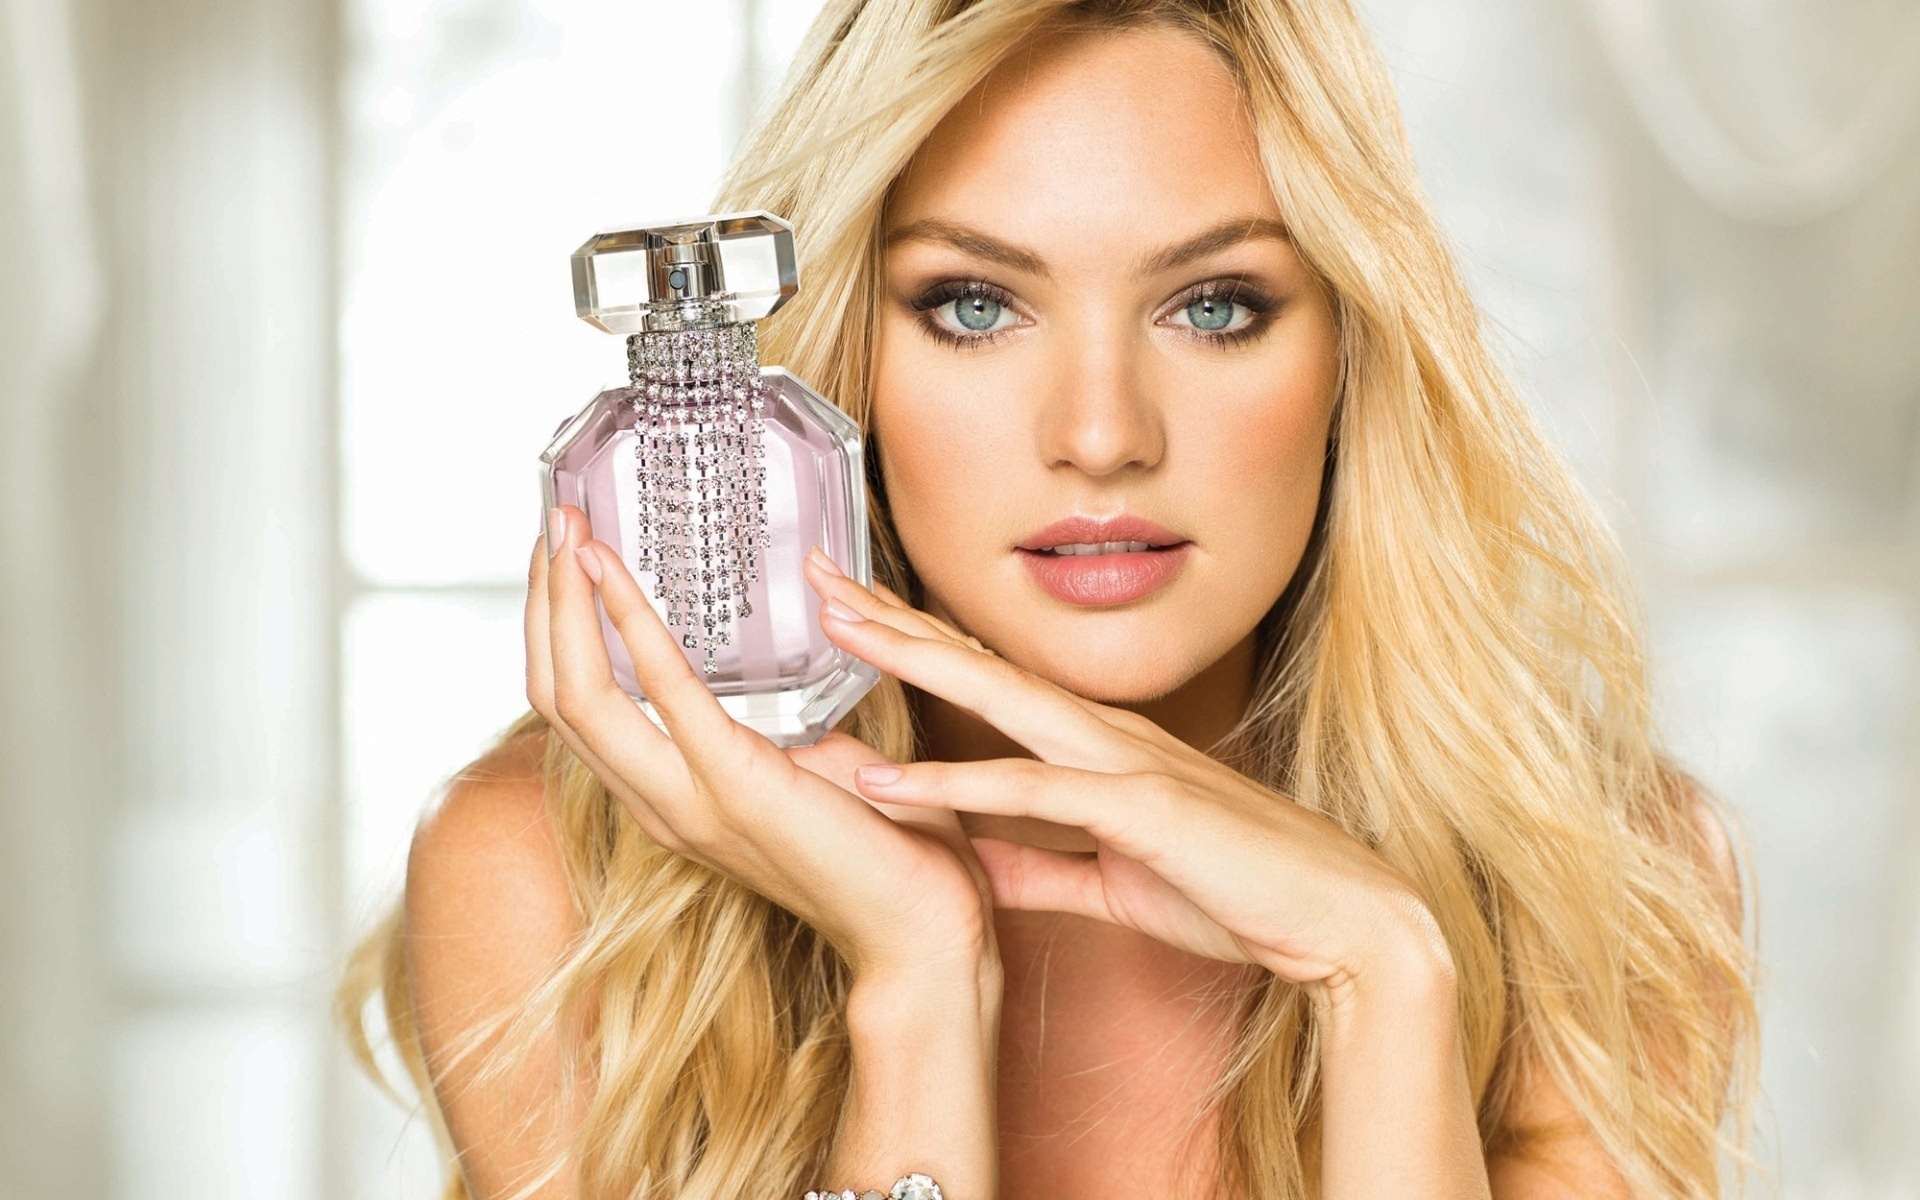 Candice Swanepoel Wallpapers, Pictures, Images